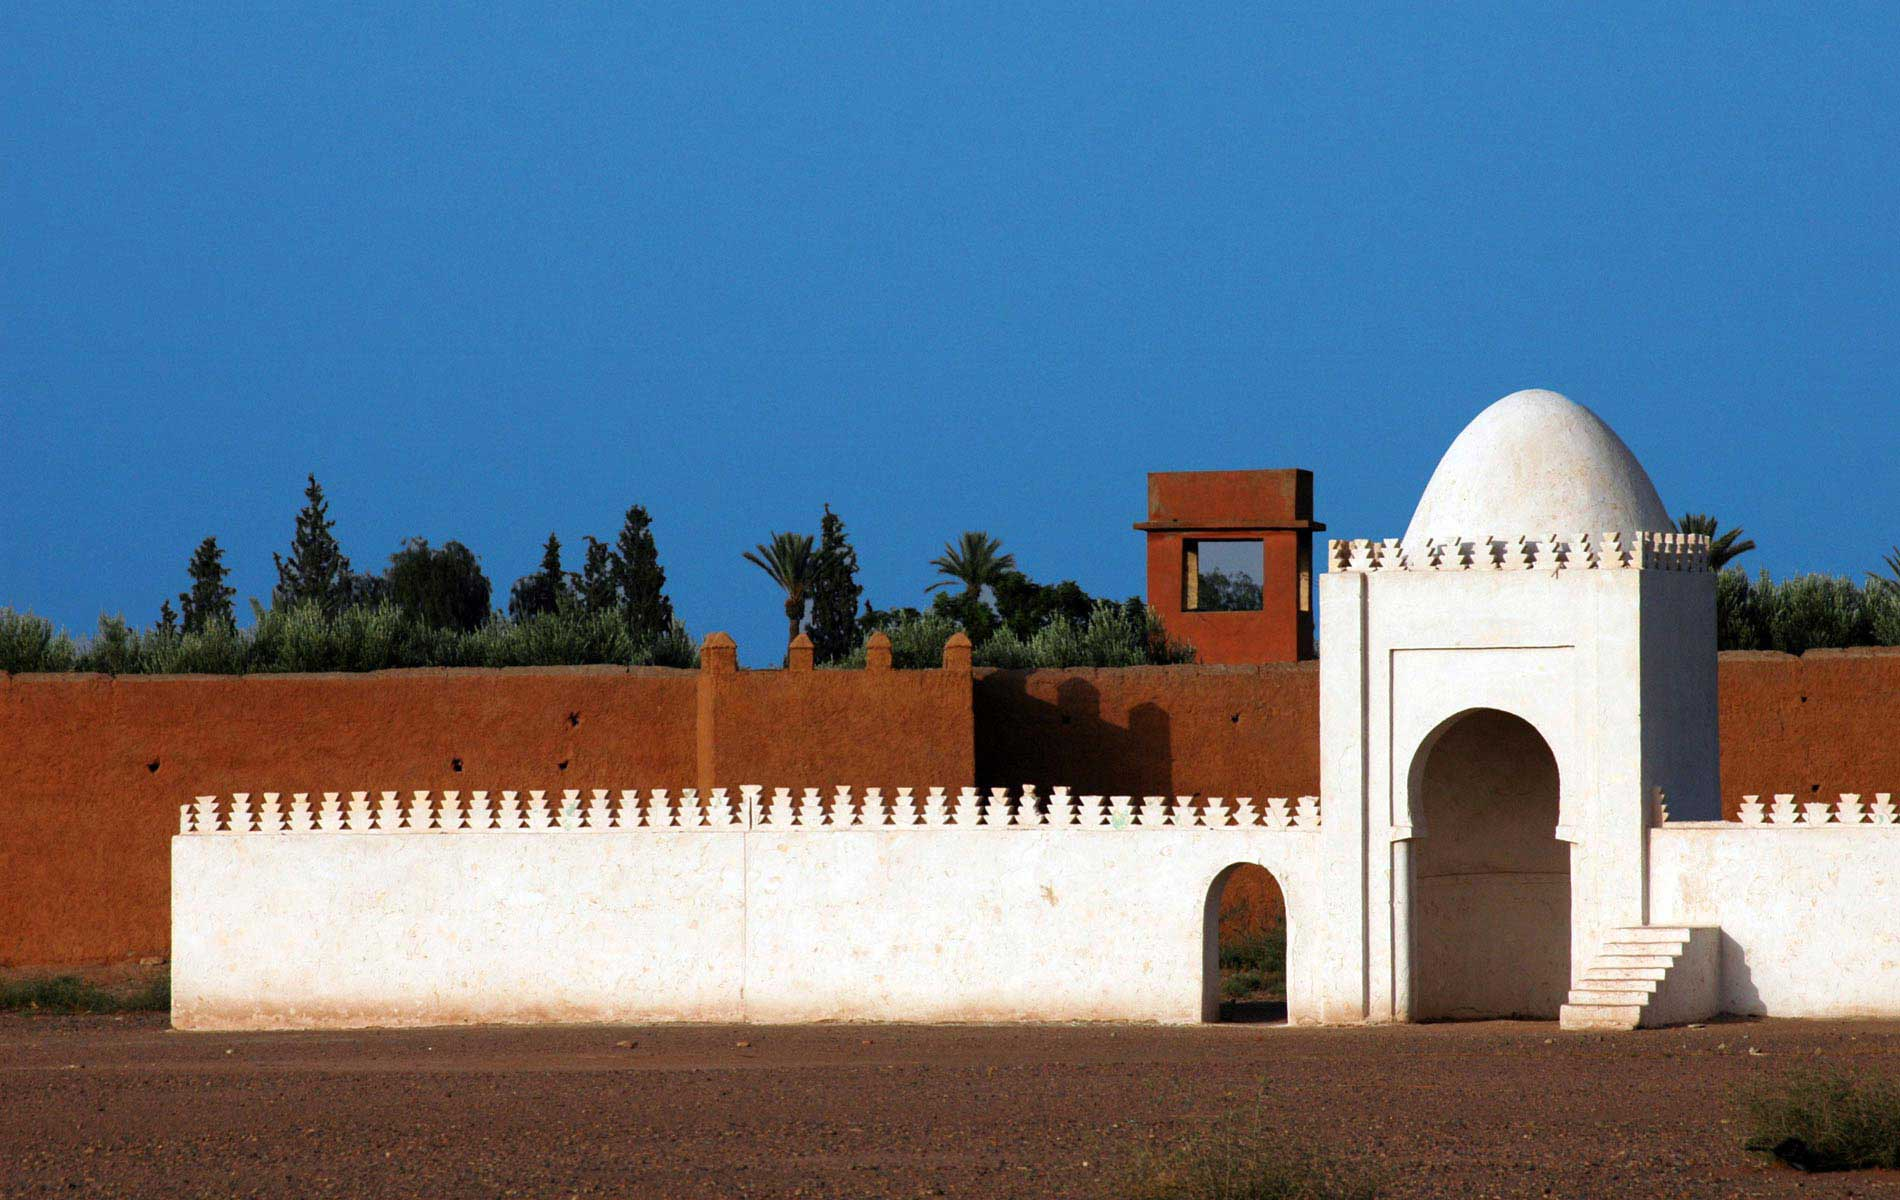 MOROCCO - Marrakech - The Red and White Wall - © Graziano Villa